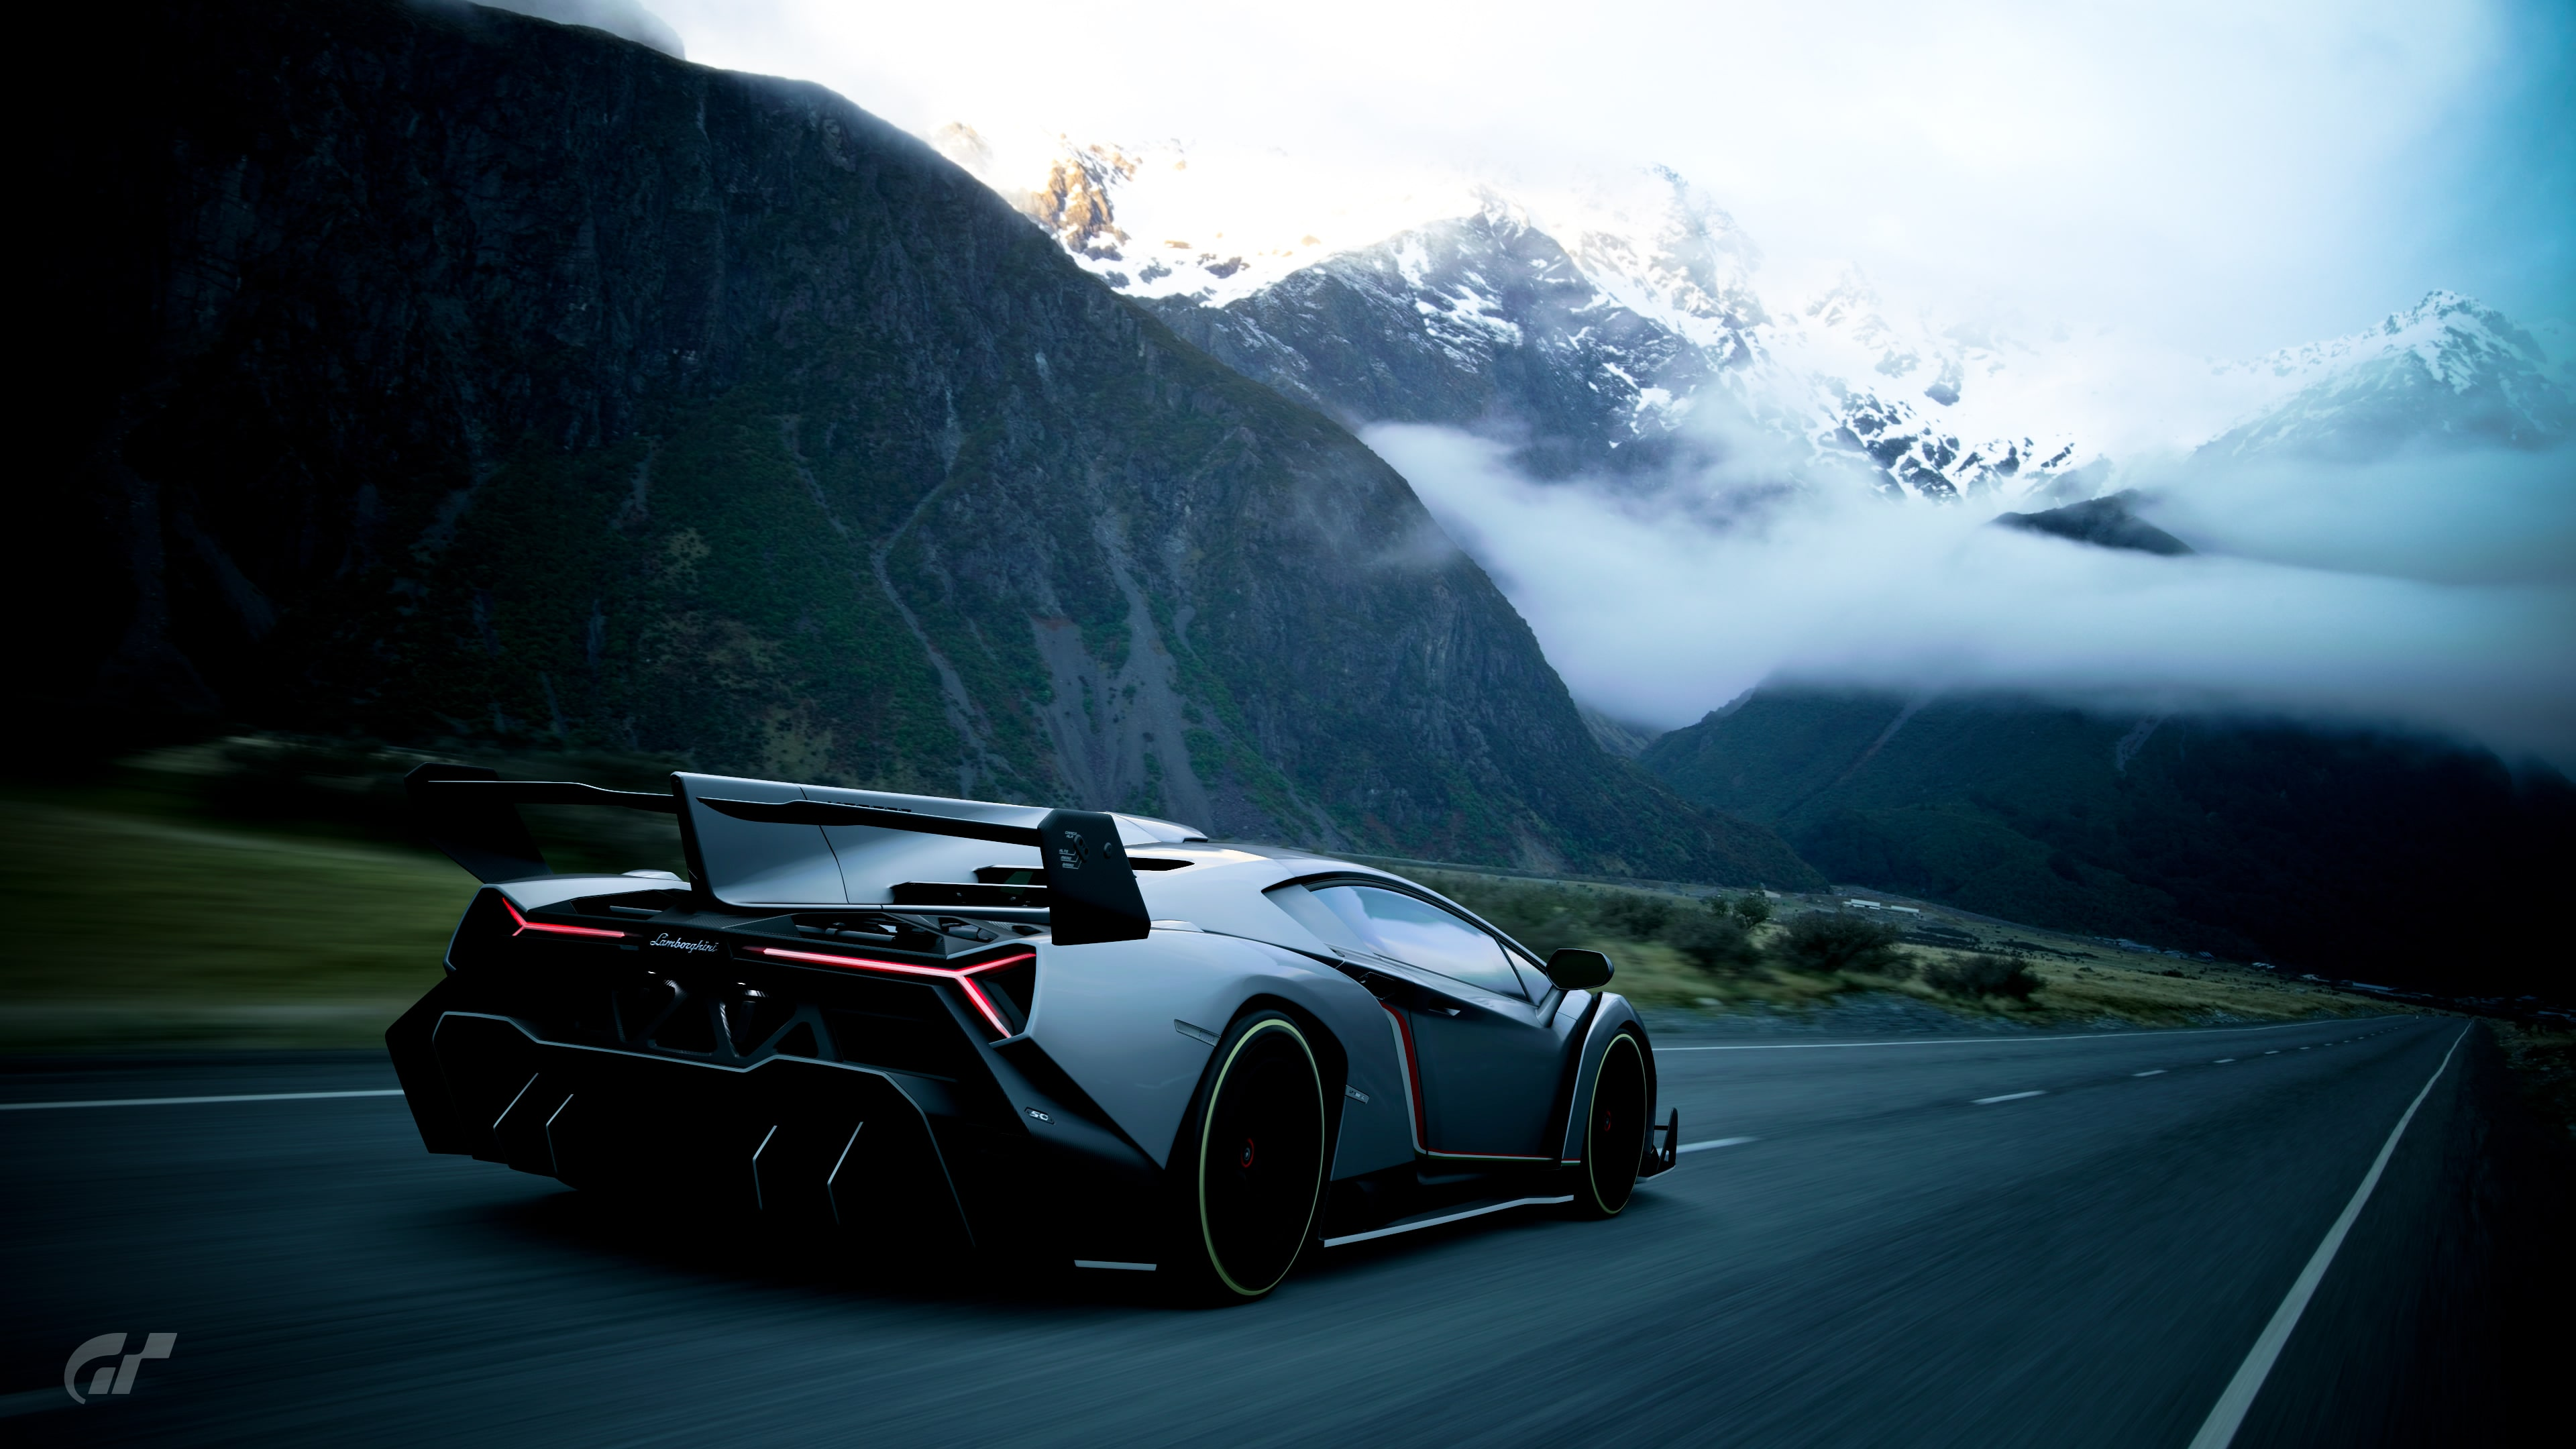 Best Lamborghini Wallpapers